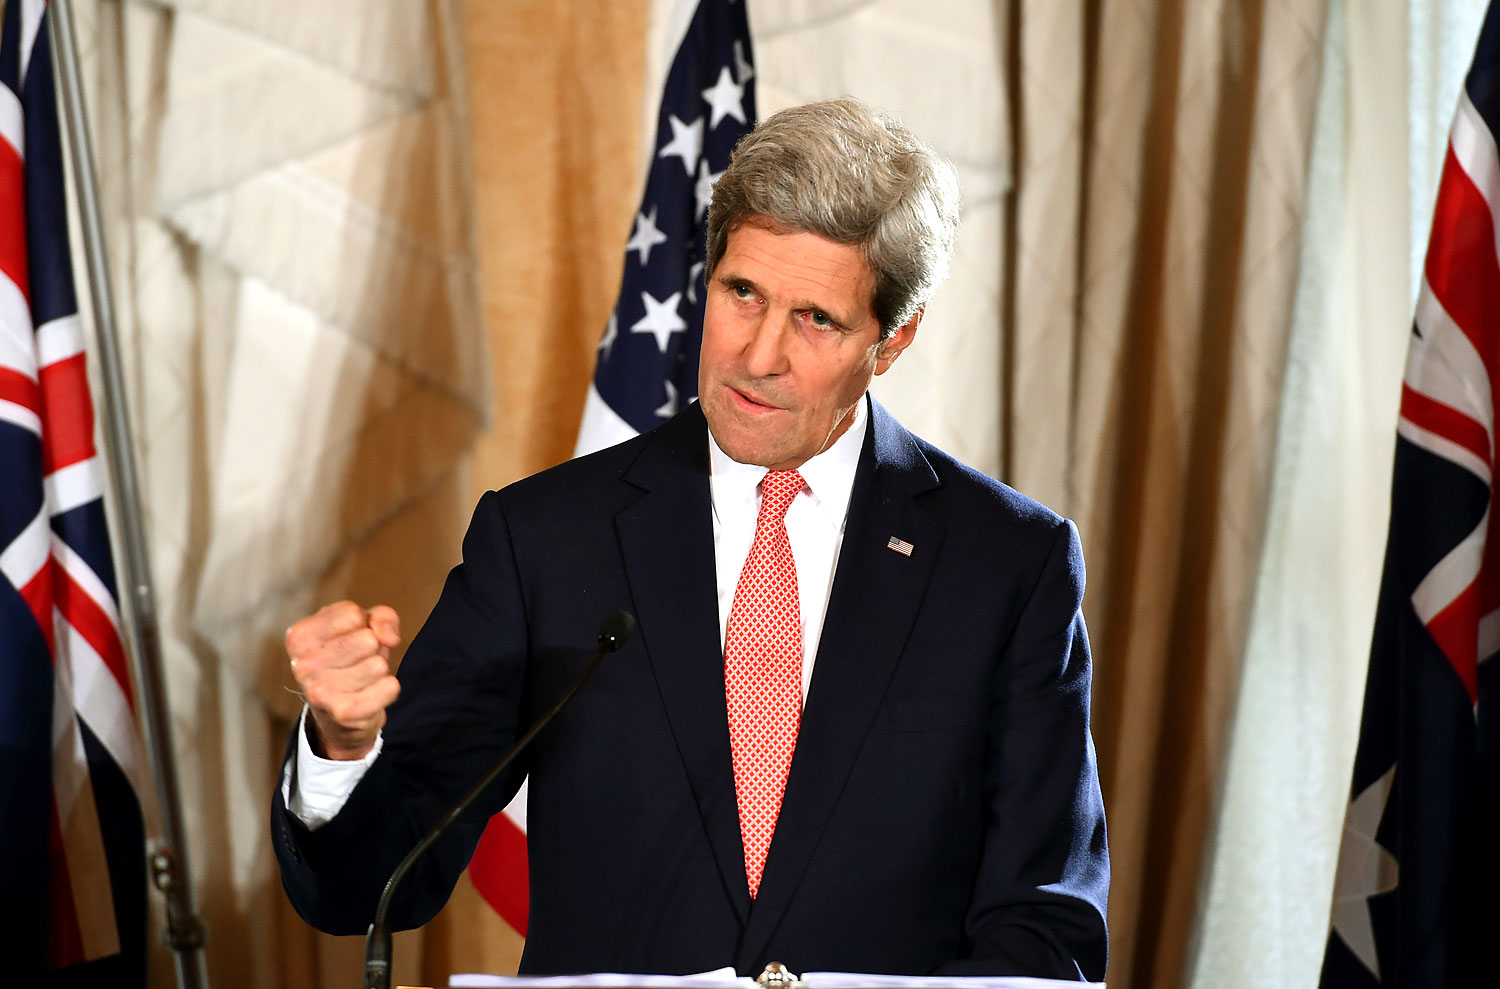 FILE - In this Aug. 12, 2014 file photo, U.S. Secretary of State John Kerry gestures as he speaks to the media during a press conference at the conclusion of the AUSMIN talks at Admiralty House in Sydney, Aug. 12, 2014.